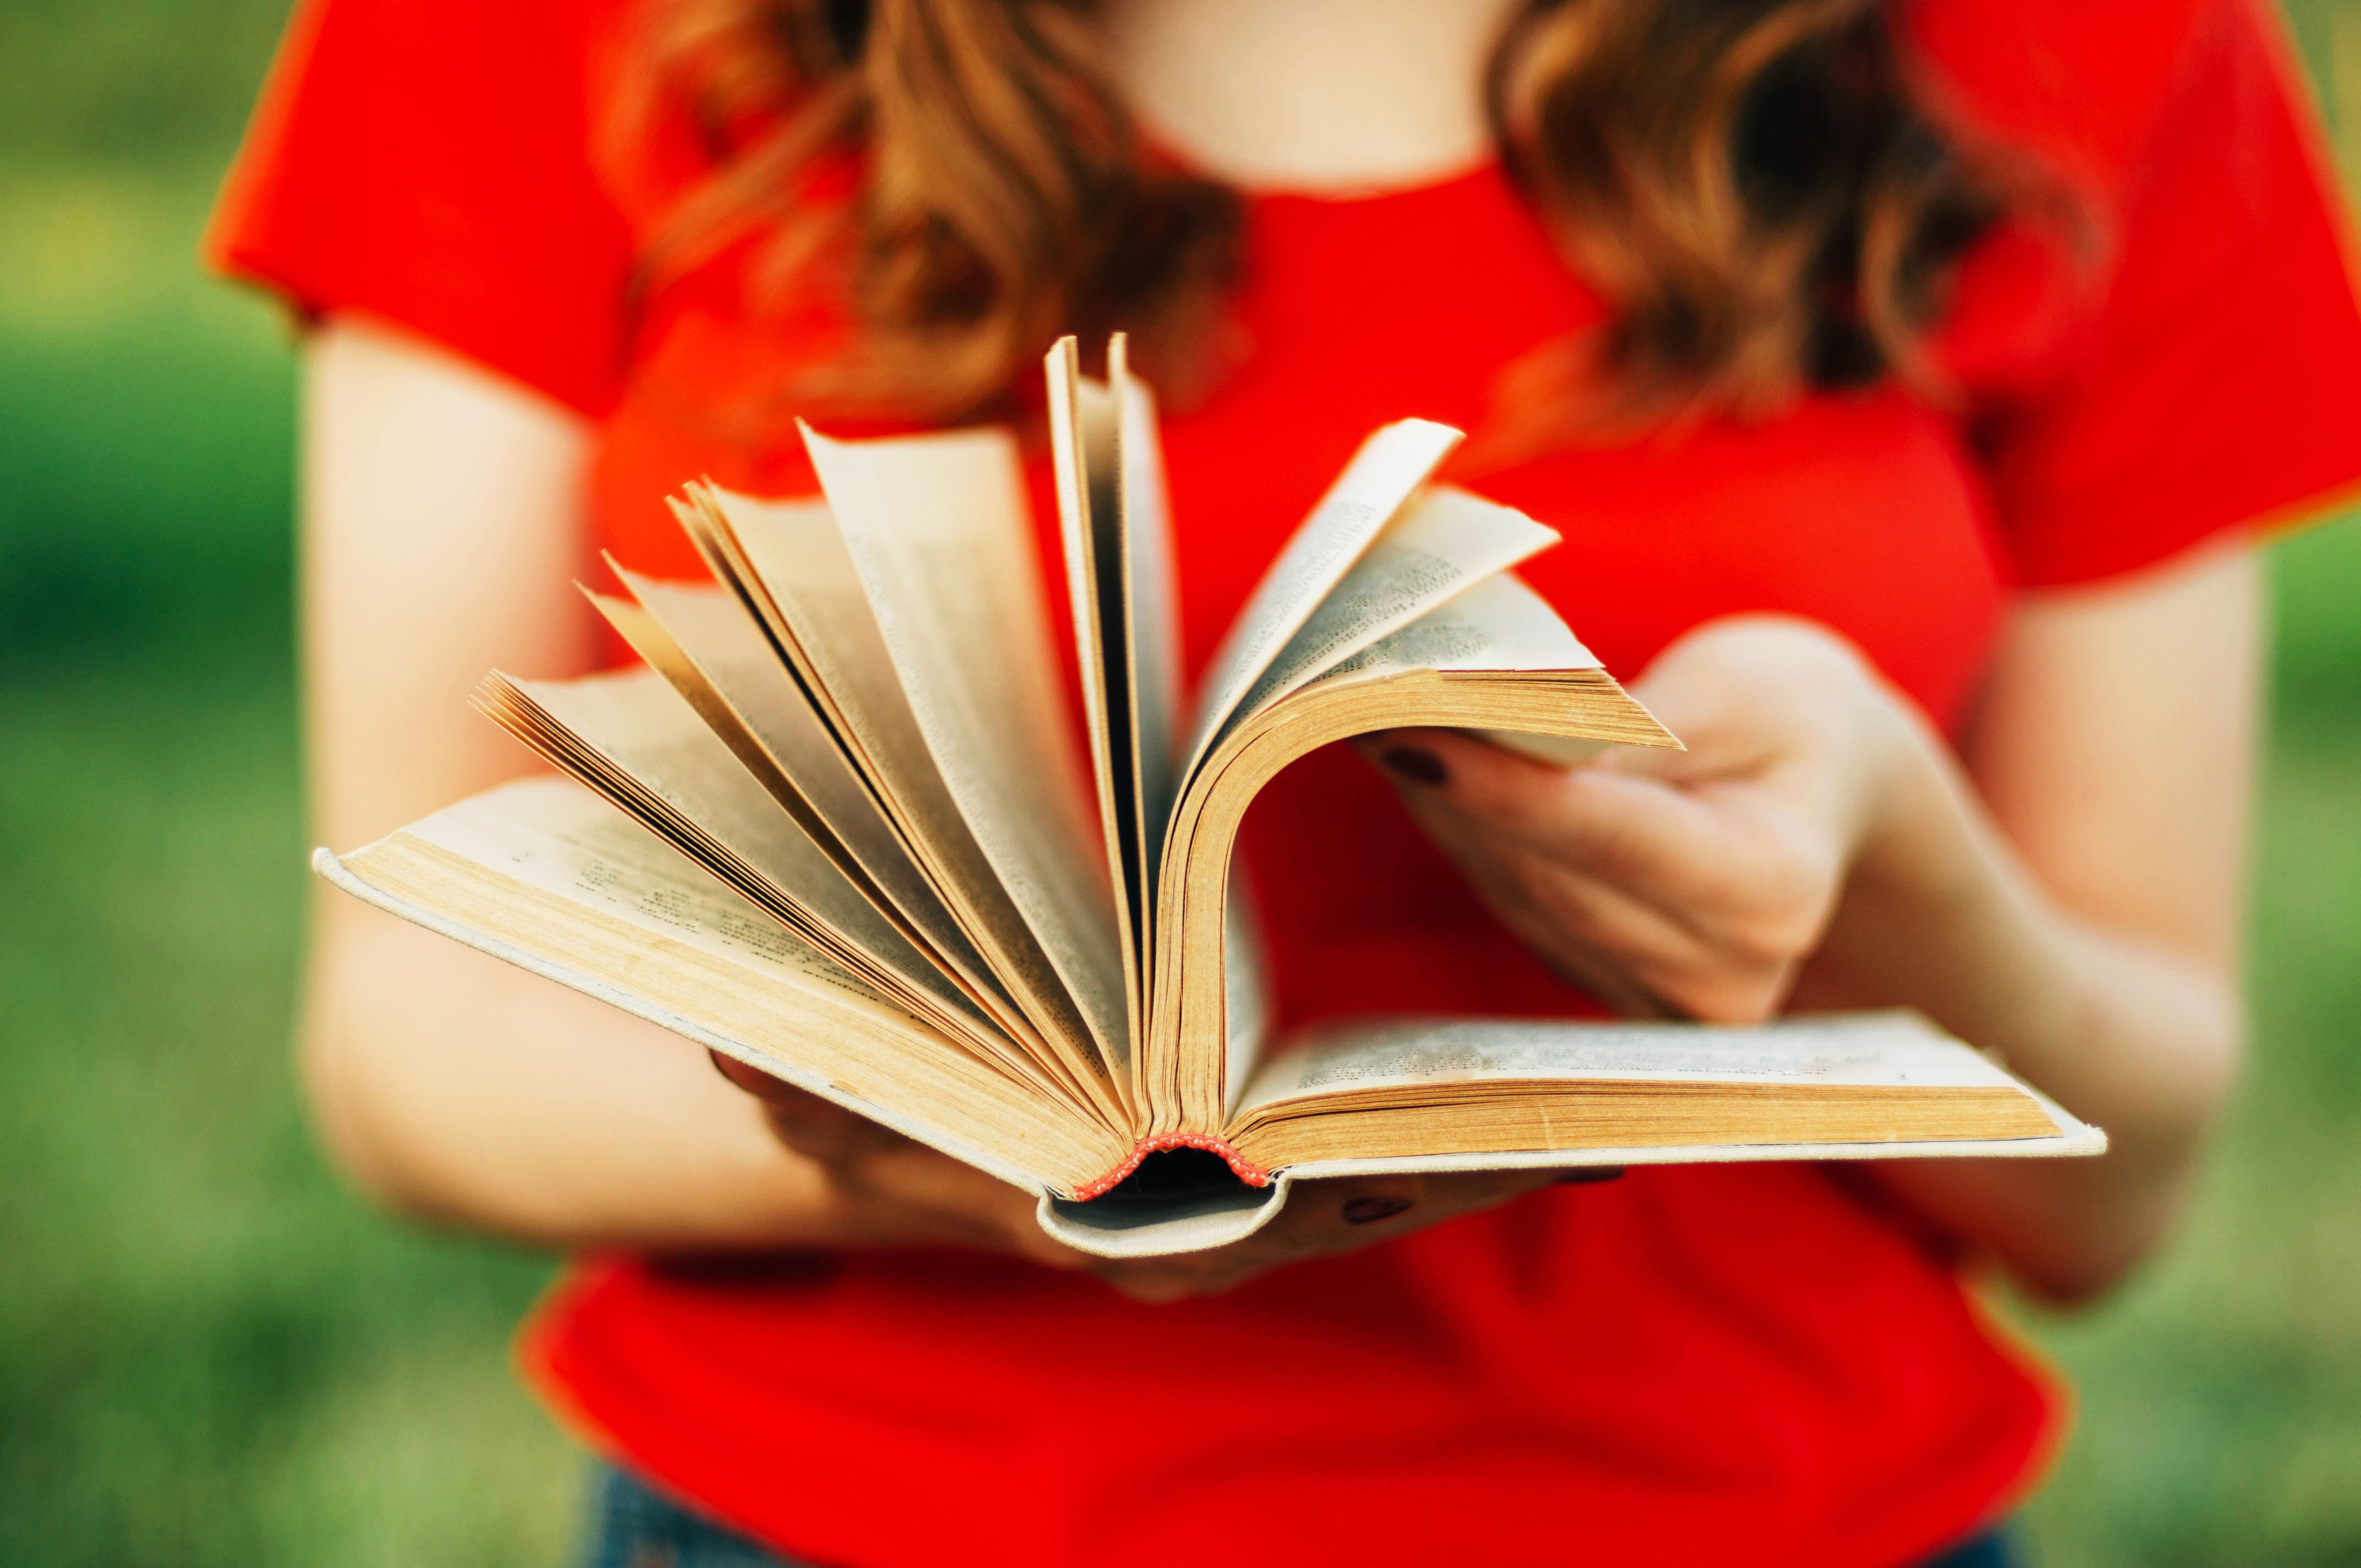 bigstock-Detail-From-A-Woman-Reading-A--137615903.jpg